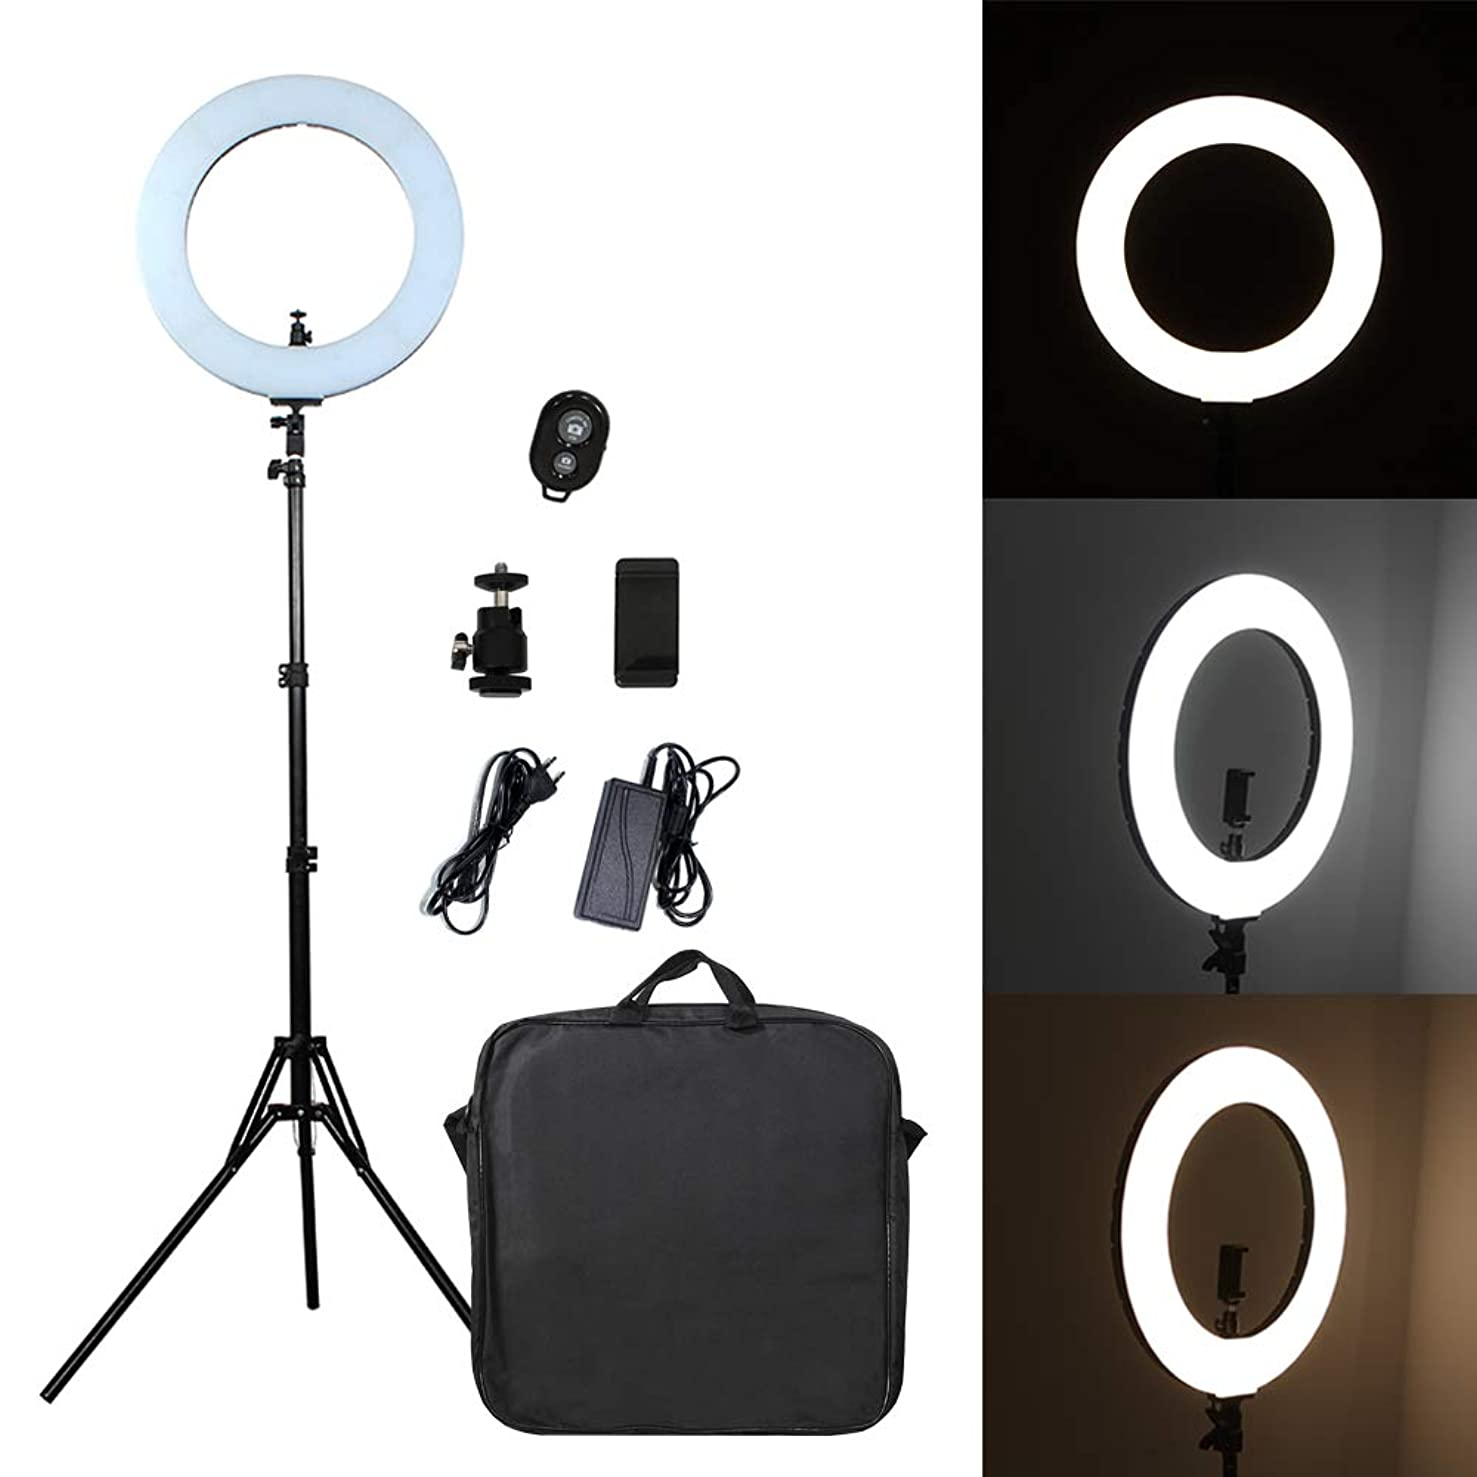 Pixco Outdoor 18 inches Ring Light Kit, 60W 480 Beads Bi-Color Dimmable SMD Halo Light, Color Temperature 3000K-6000K, for Smartphone, Portrait, Makeup, YouTube Video, Live Stream